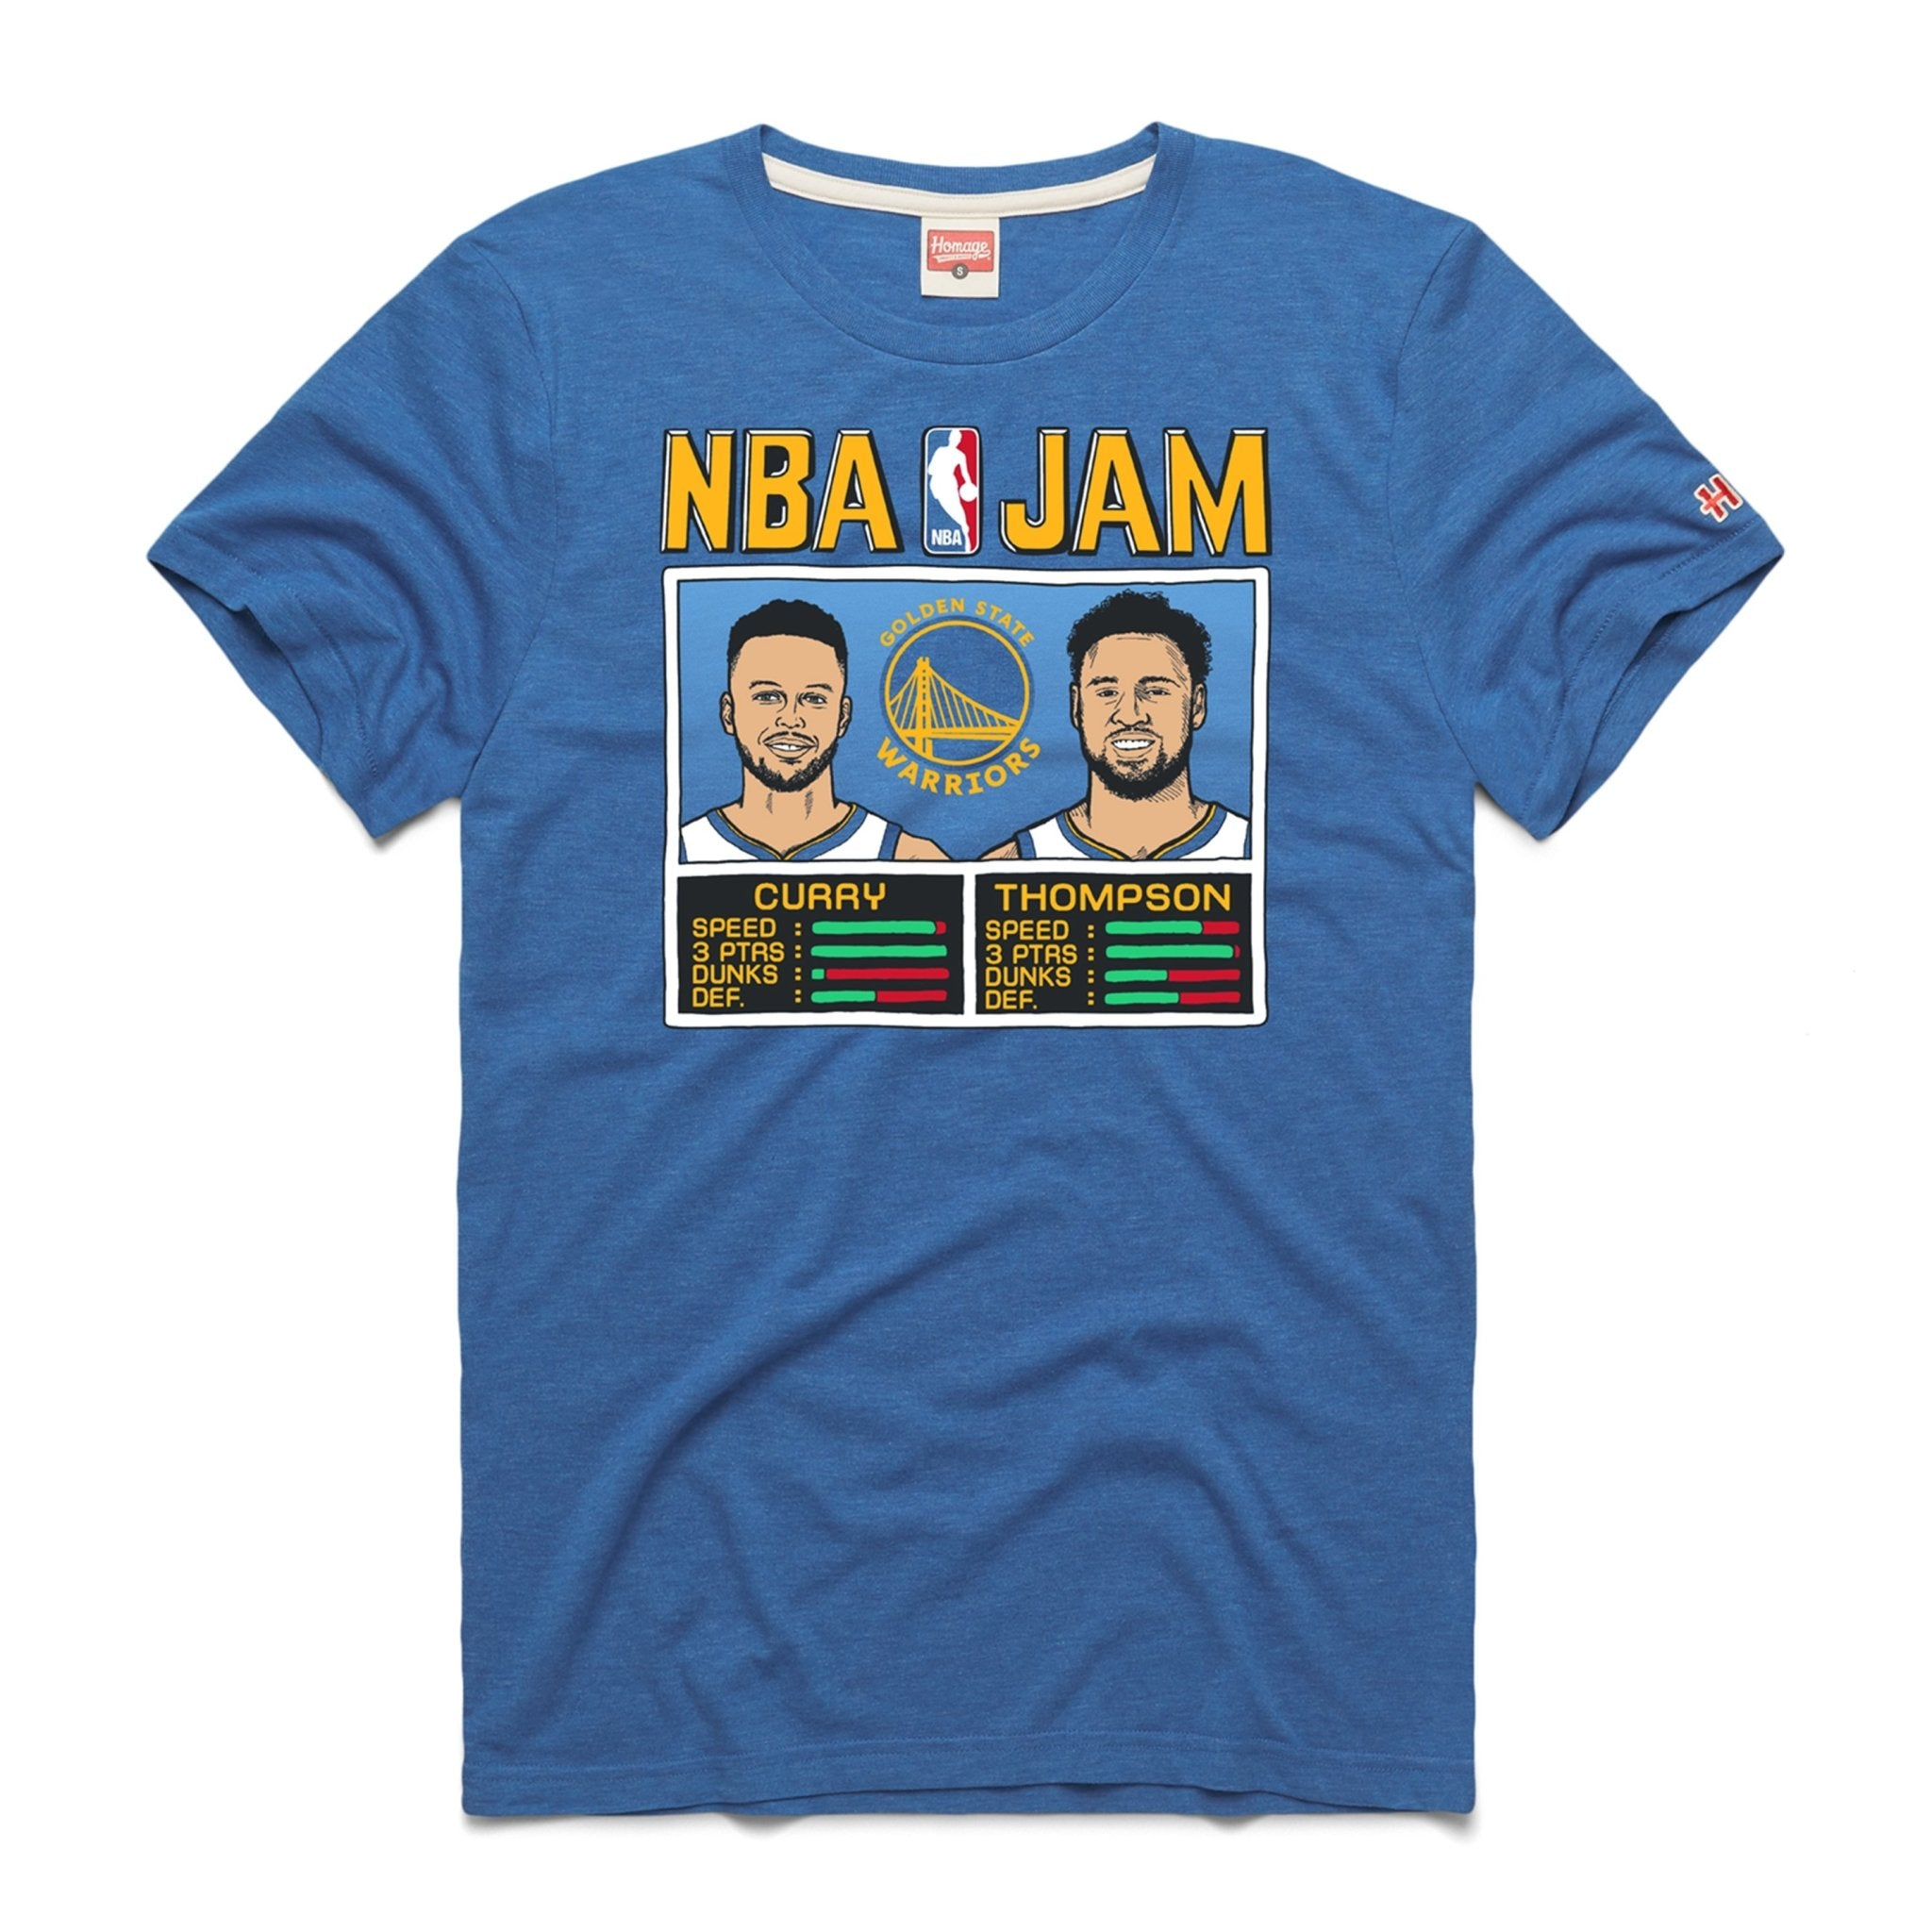 NBA Jam Golden State Warriors - Stephen Curry / Klay Thompson - SLAM